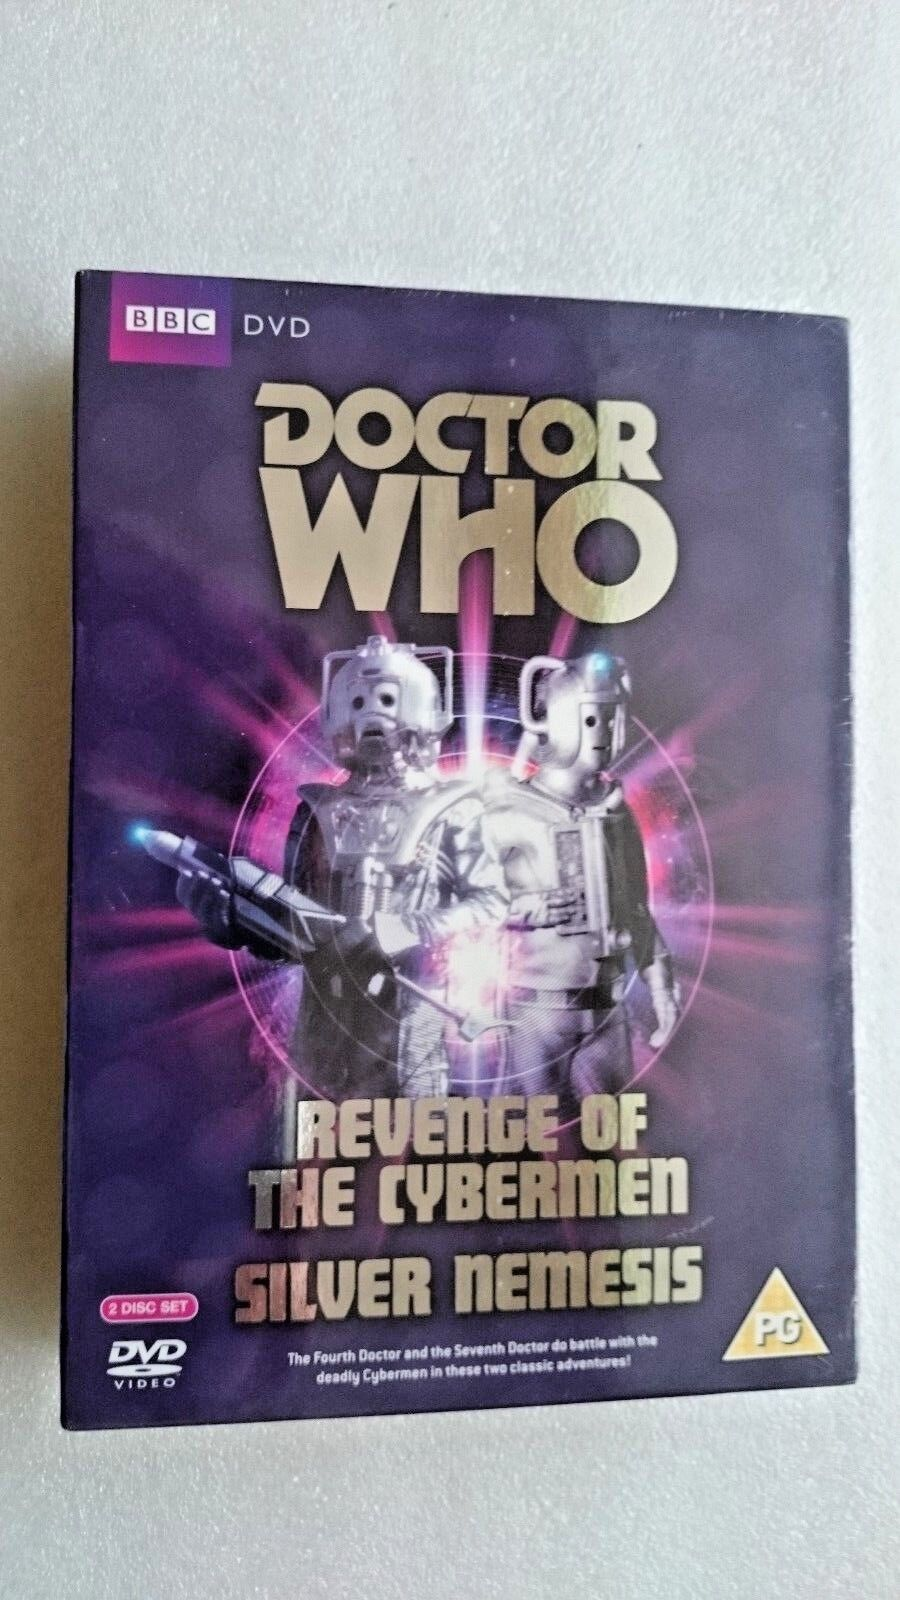 Doctor Who - The Cybermen Collection (DVD, 2010, 2-Disc Set) - NEW and SEALED